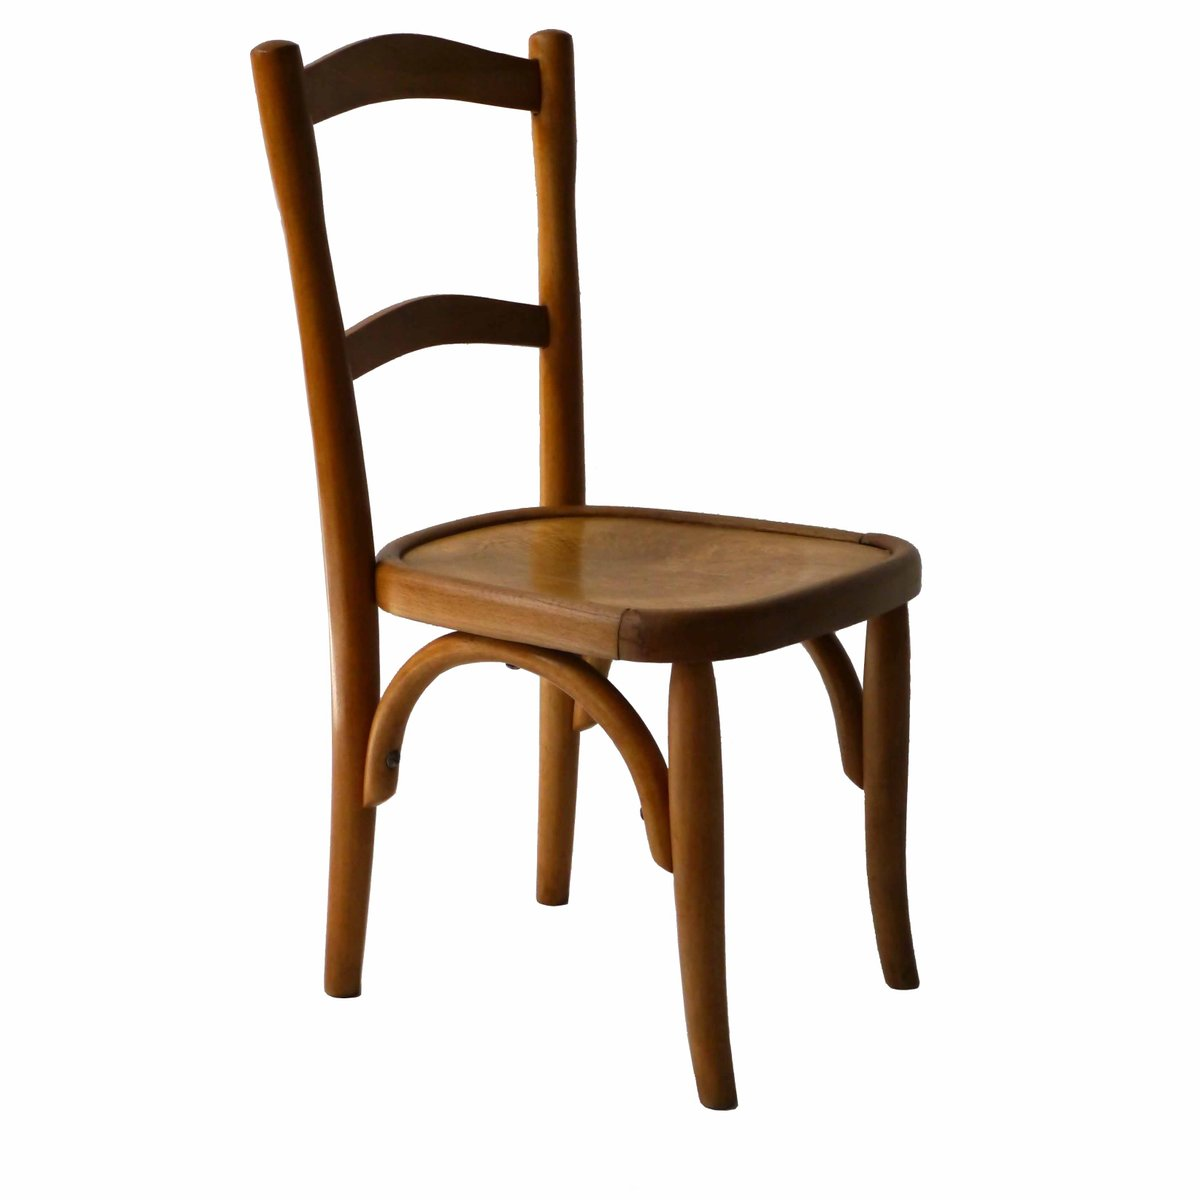 Antique Children's Chair from Thonet - Antique Children's Chair From Thonet For Sale At Pamono